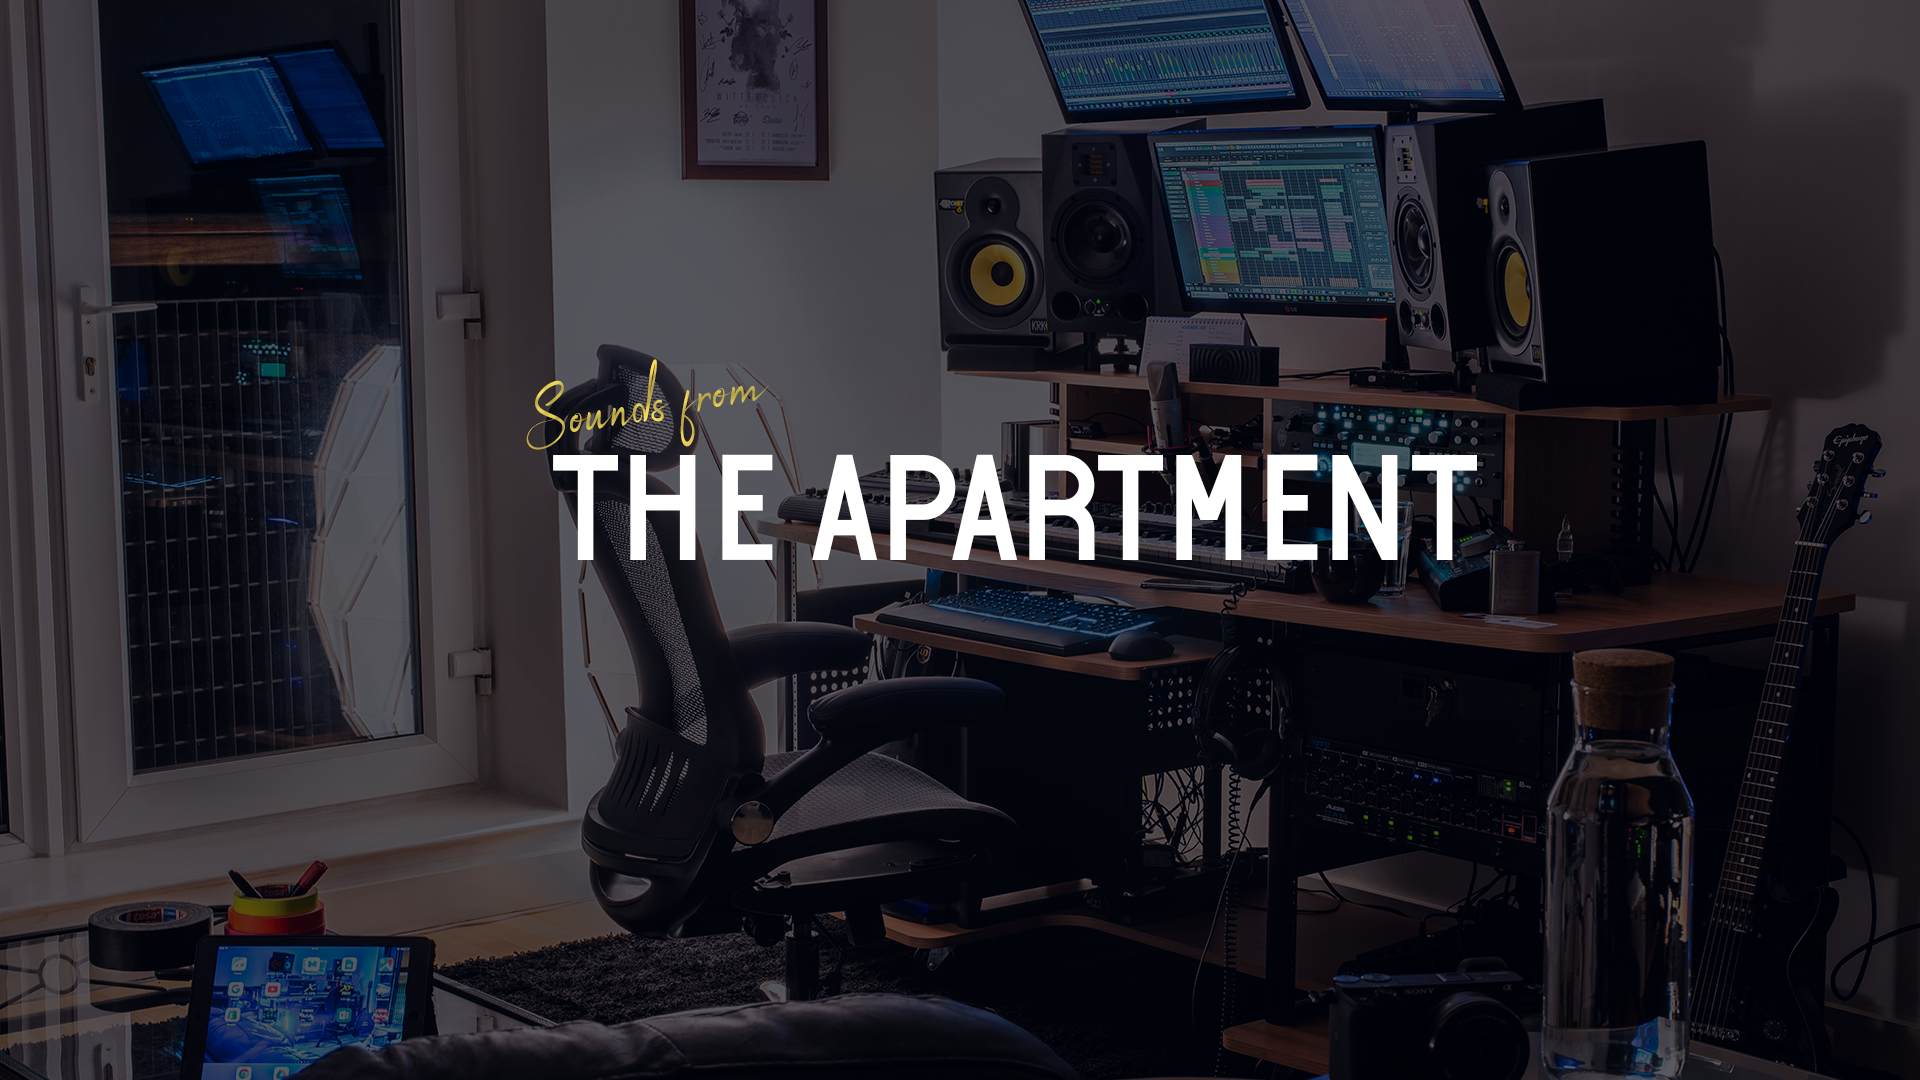 Sounds from the apartment studio with logo